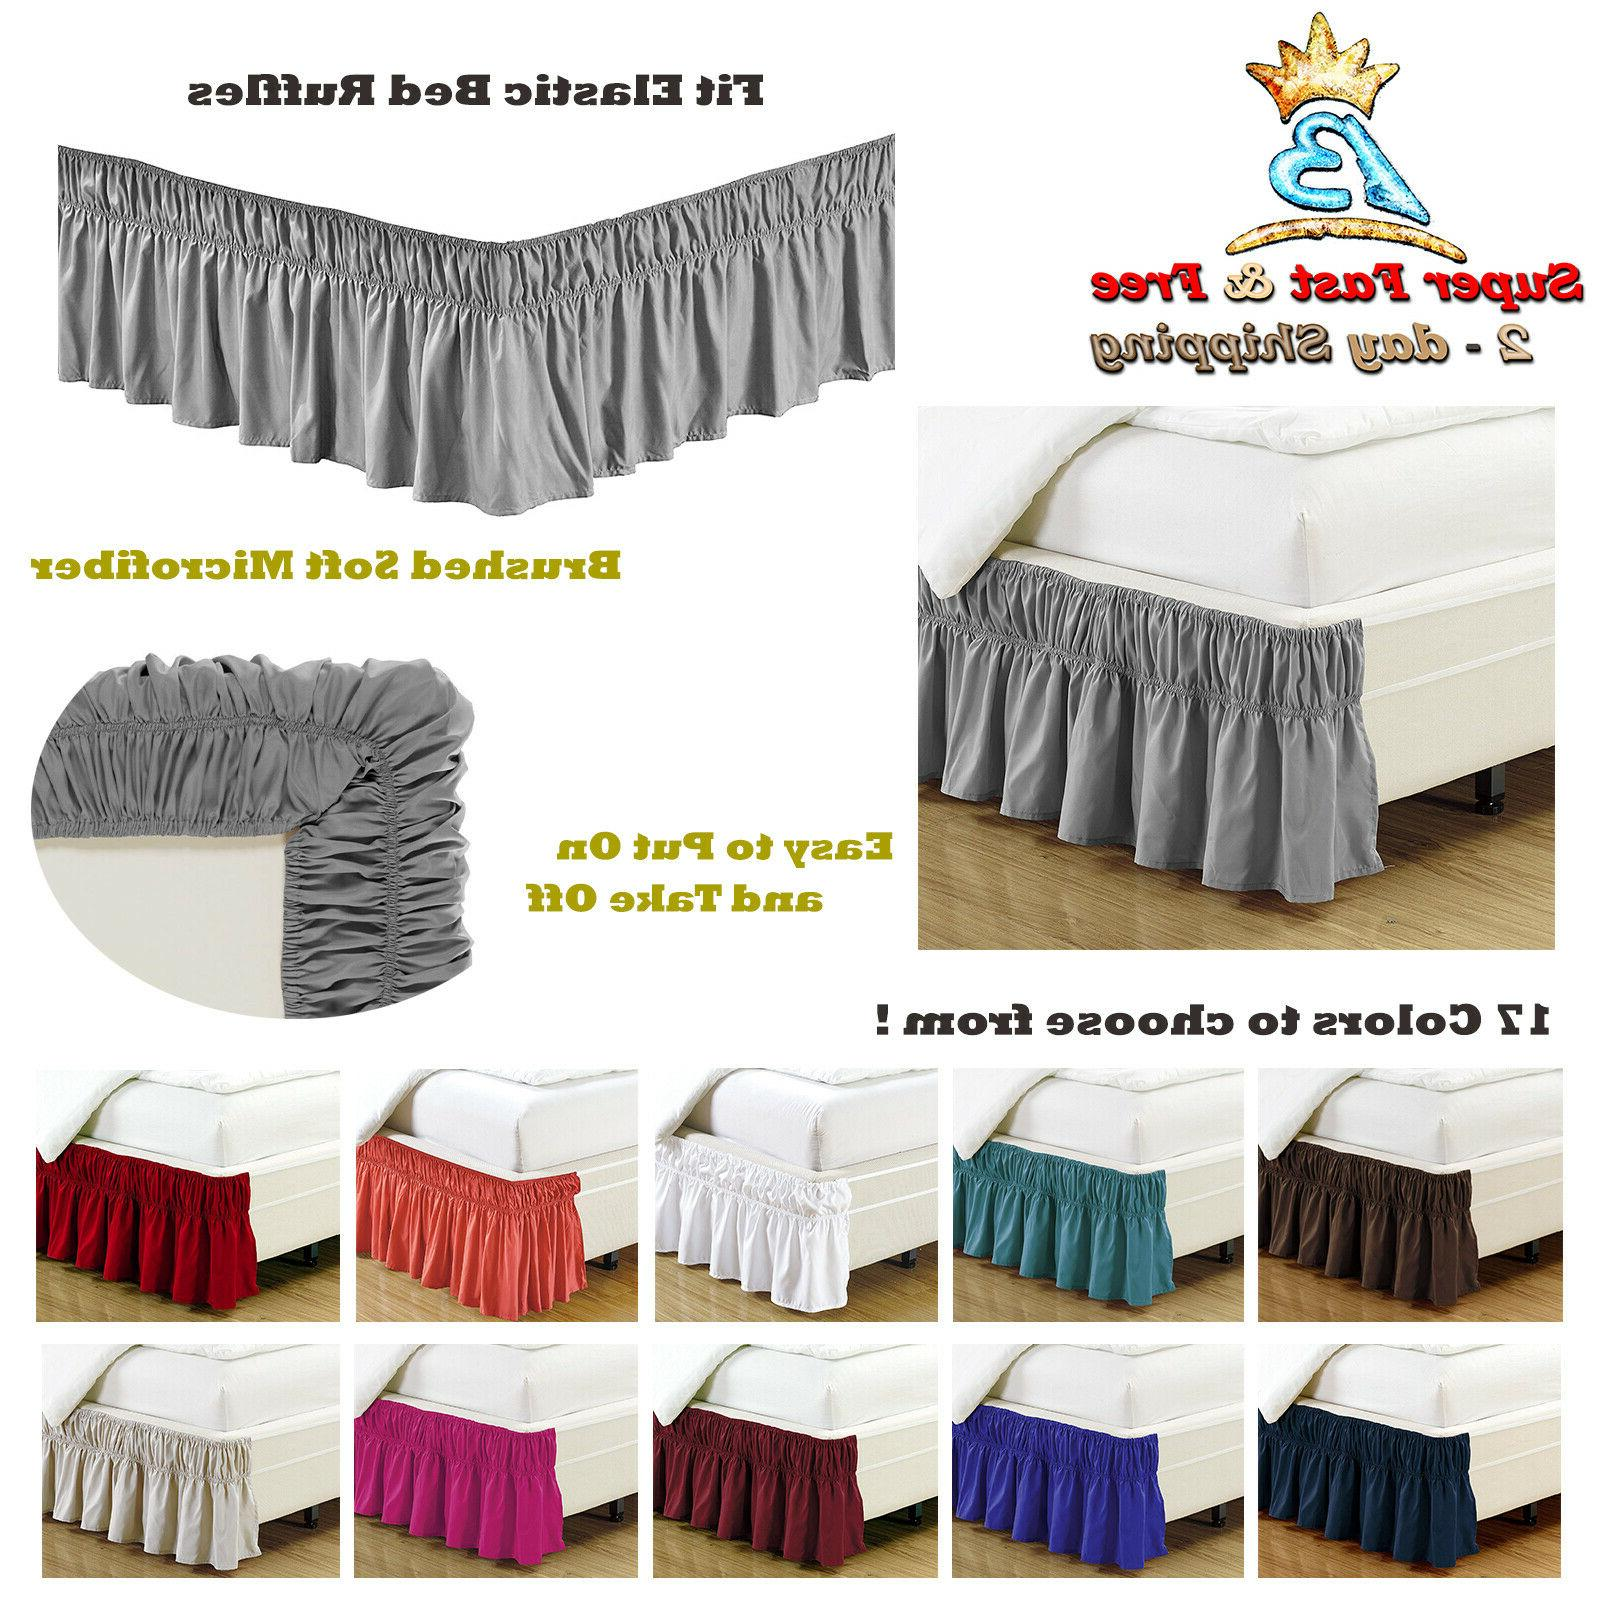 Bed Dust Ruffle Skirt Queen King Twin Full Size Wrap Around